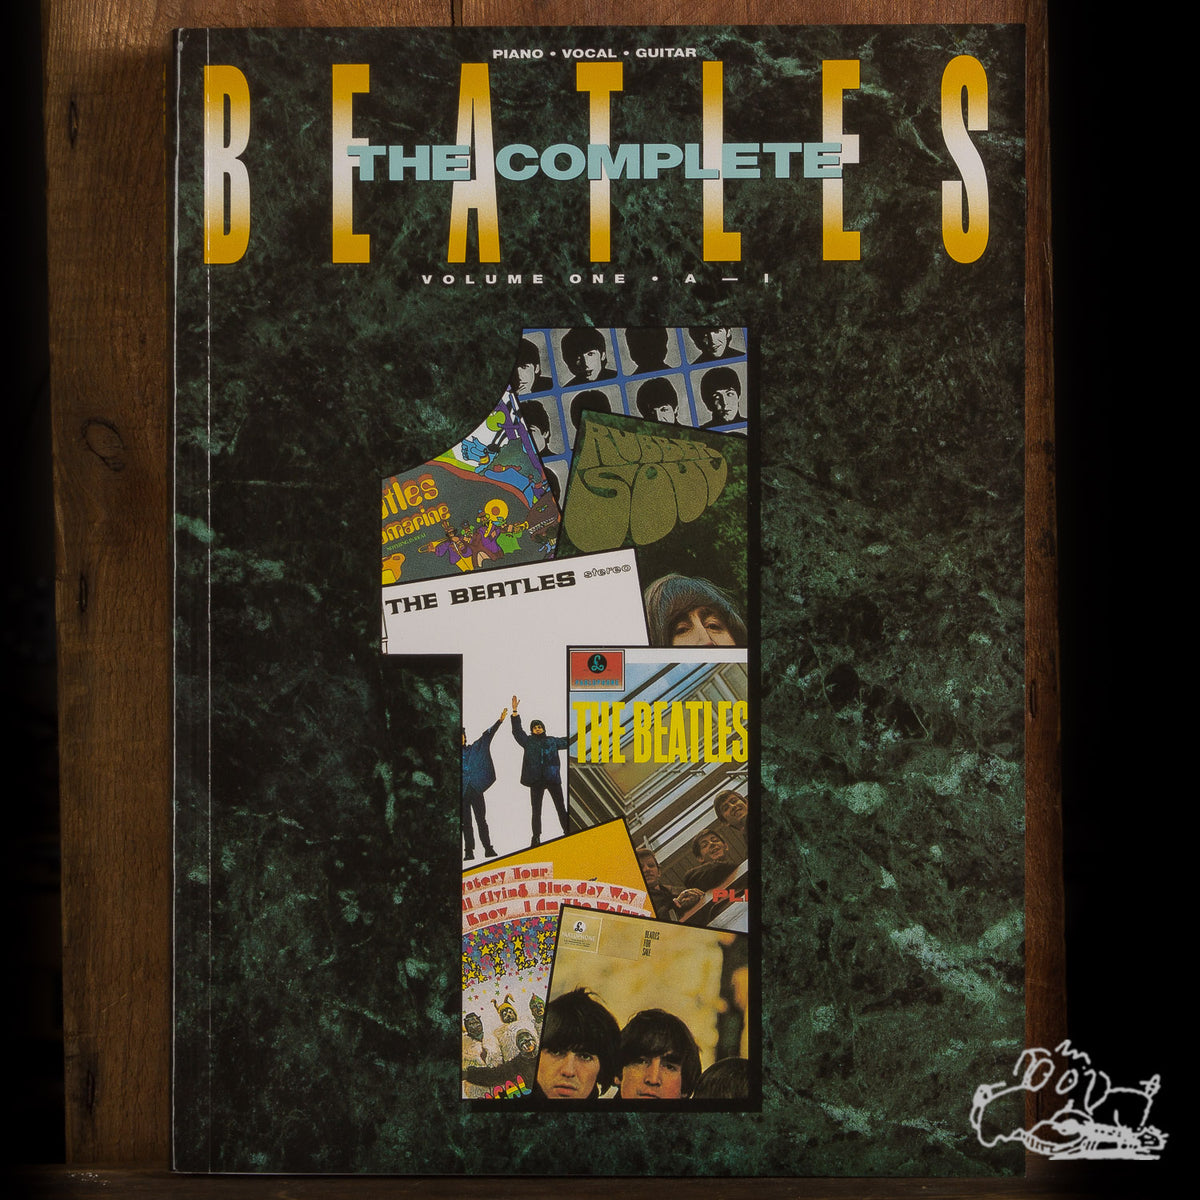 The Complete Beatles Vol. 1 A-I Piano/Vocal/Guitar